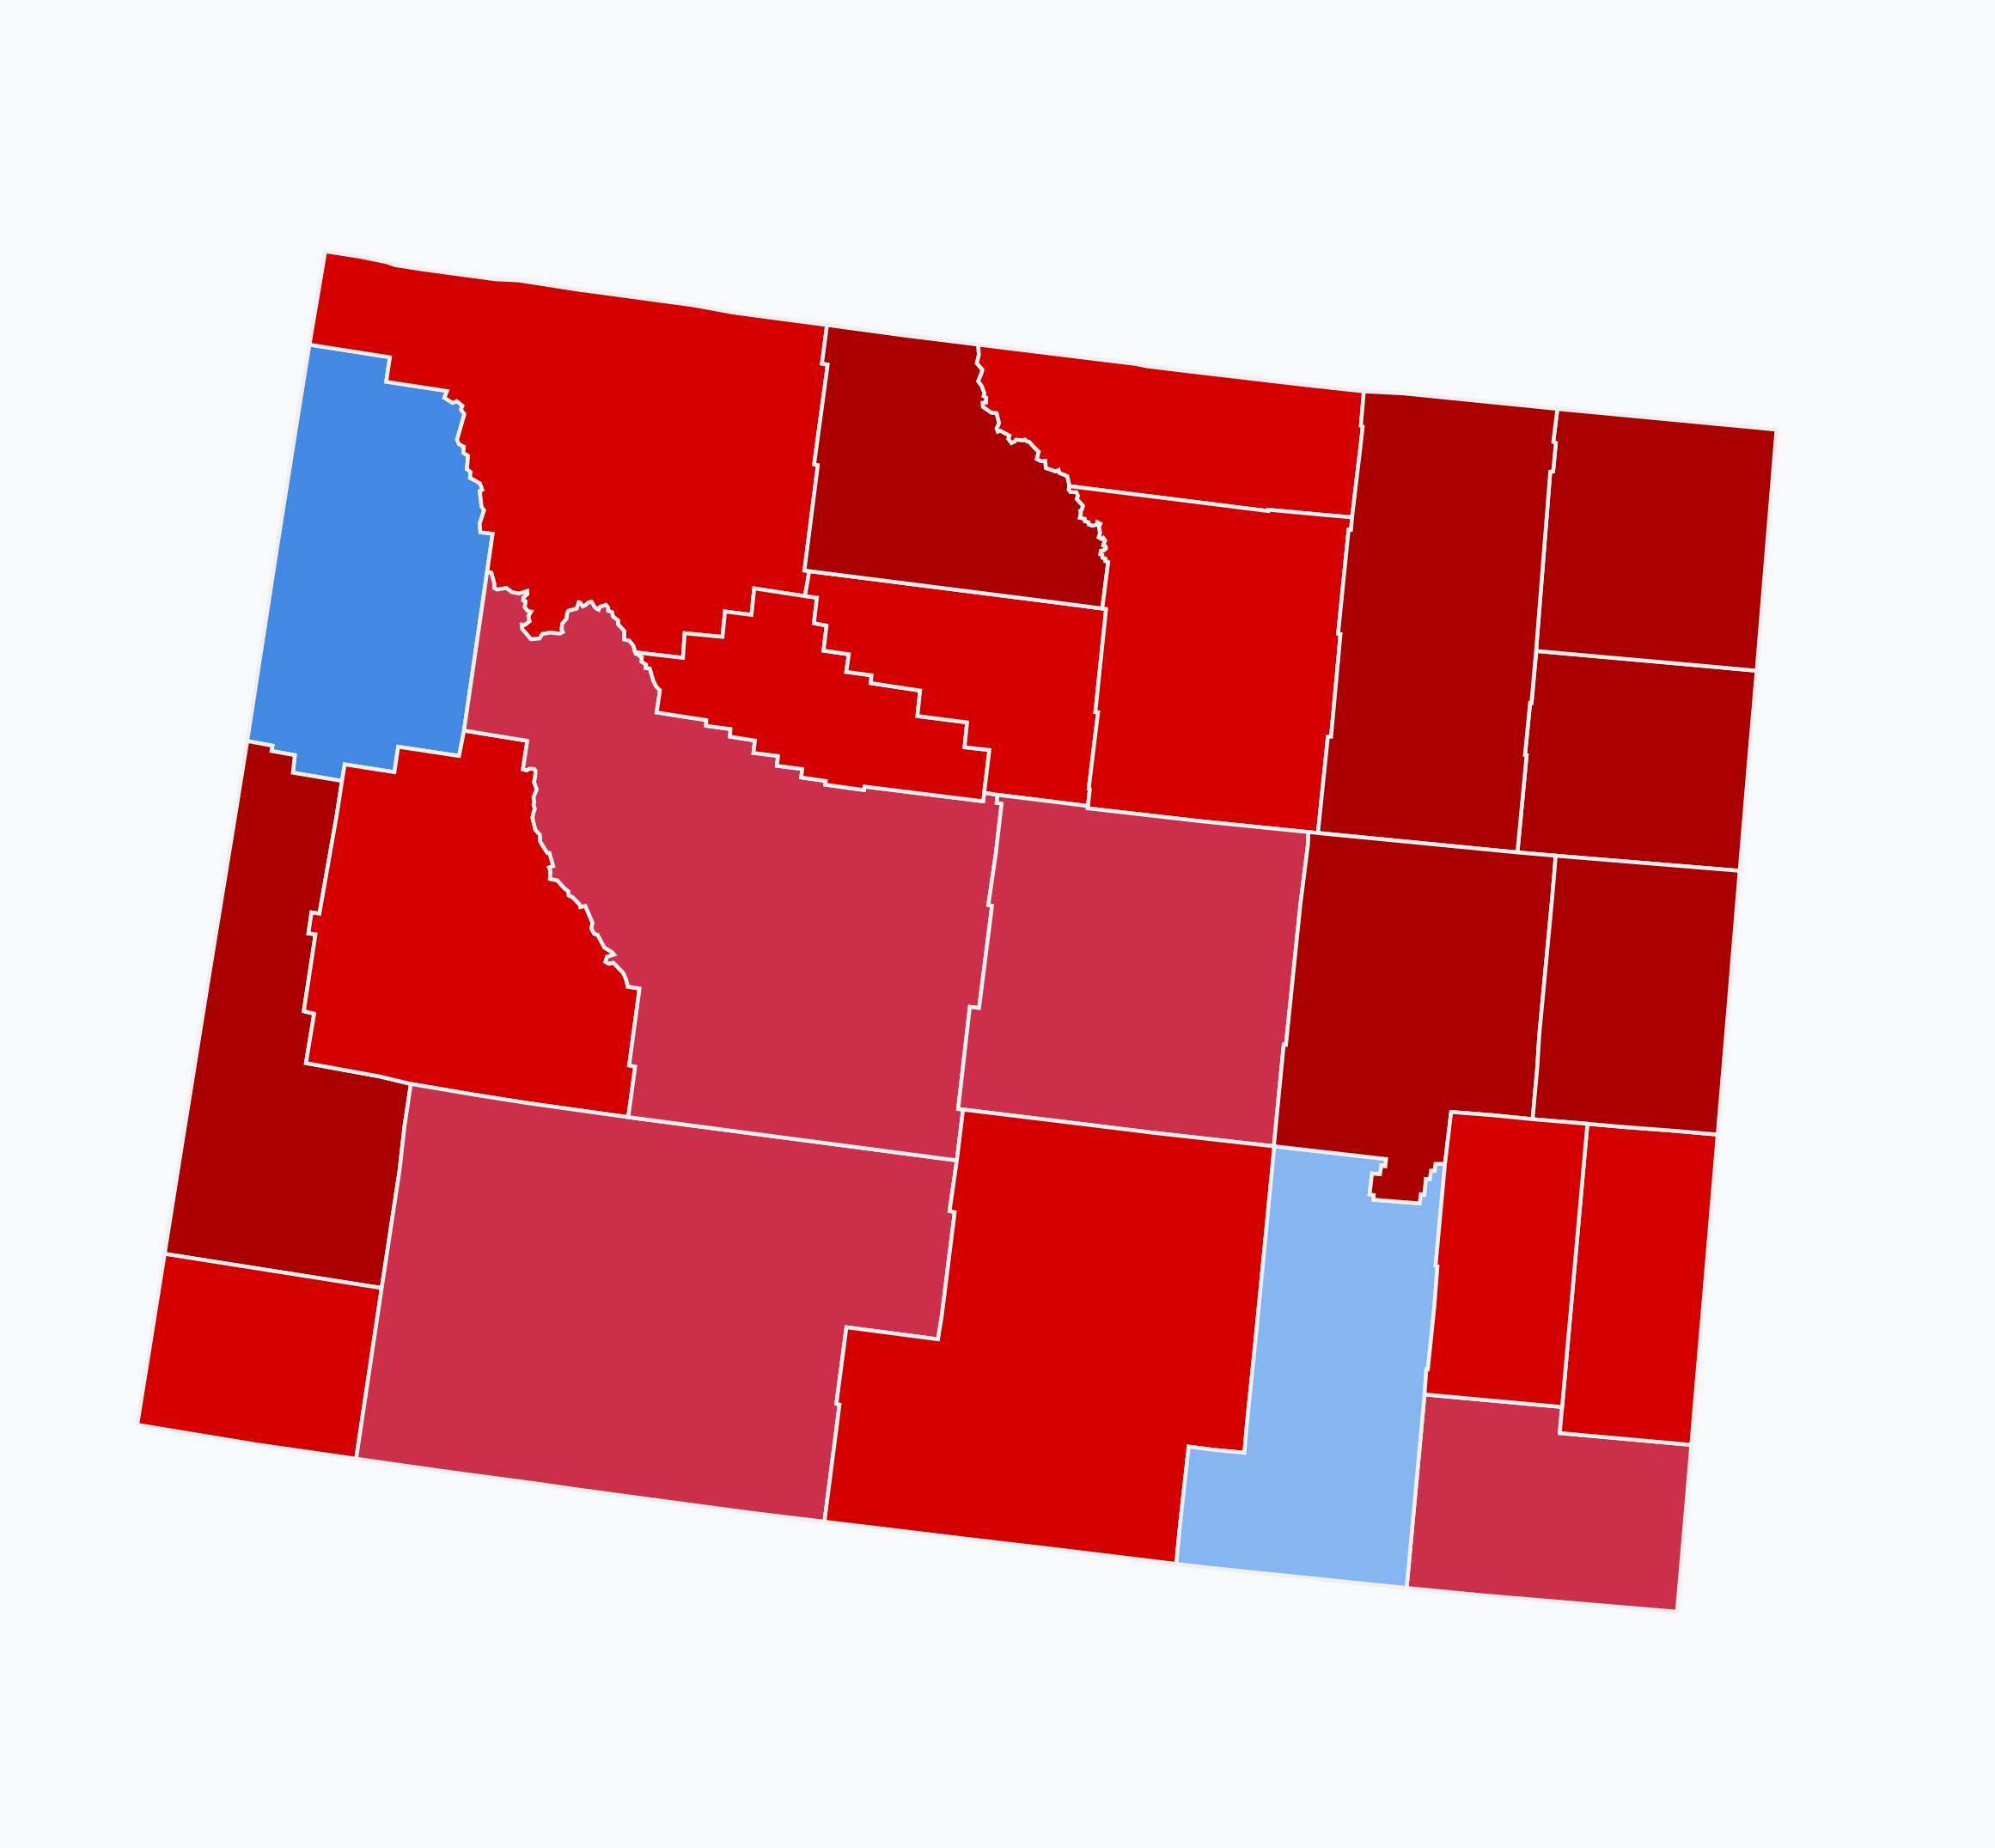 File:2018 Senate election results in Wyoming.png.